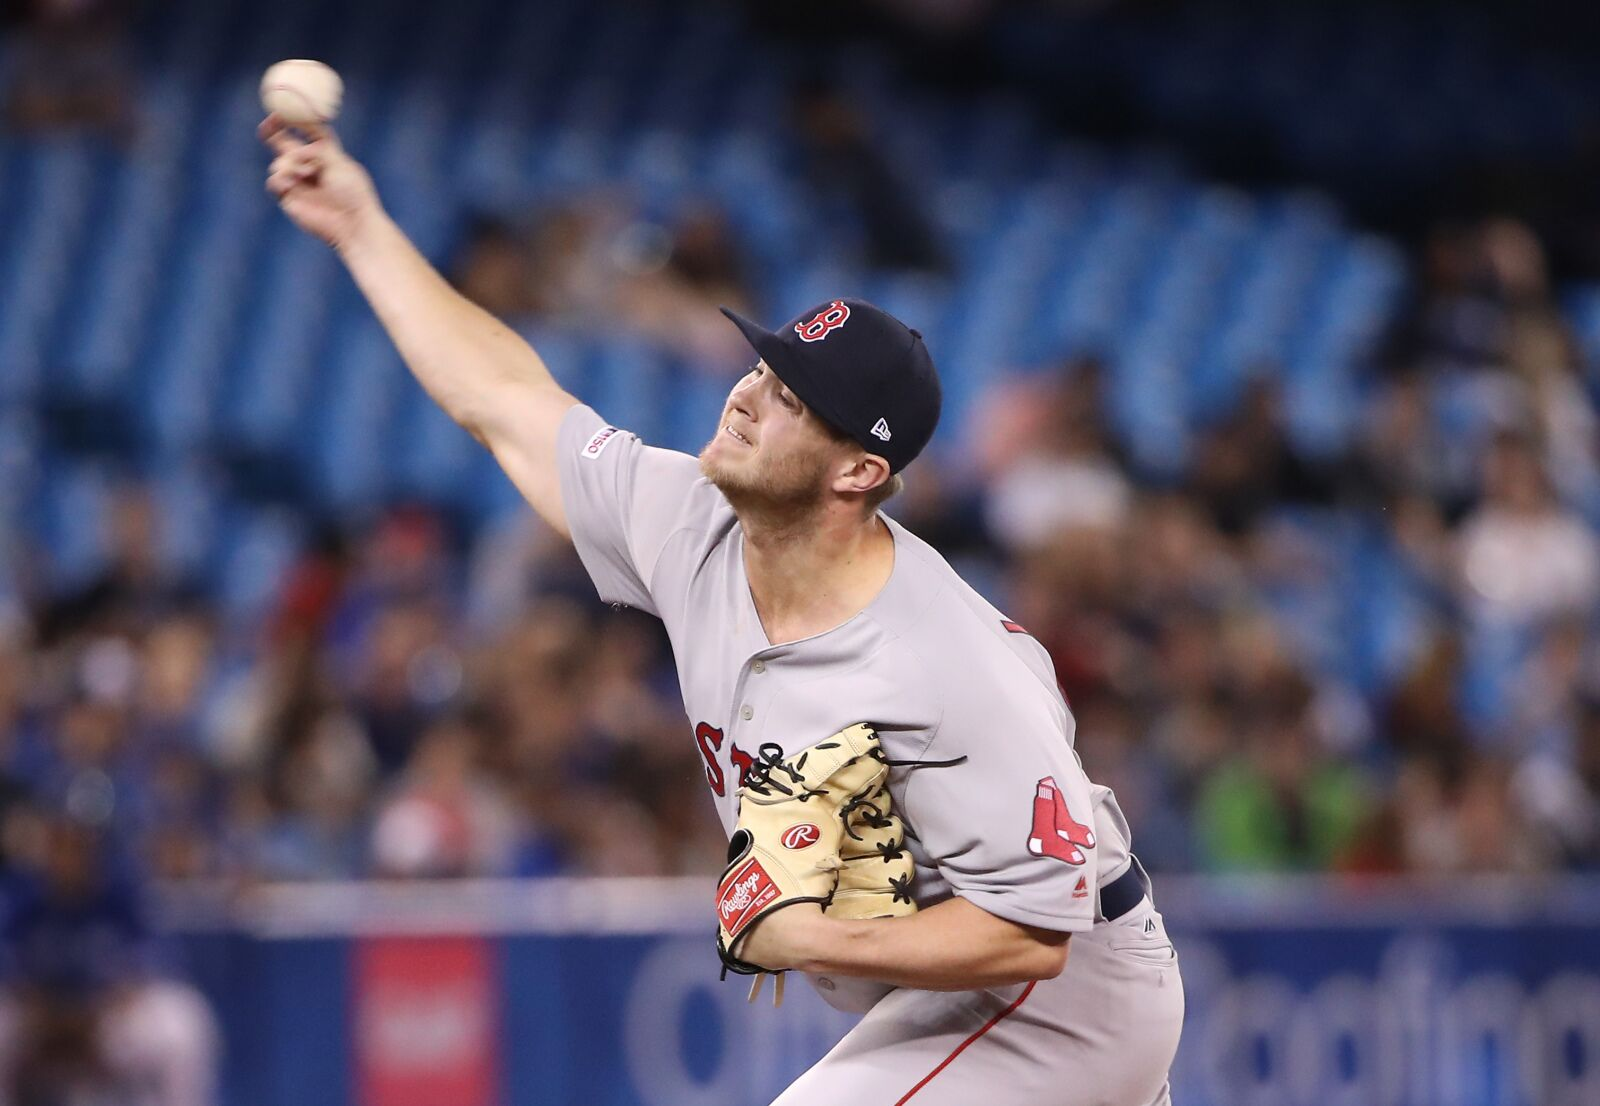 Red Sox reliever Travis Lakins is eyeing a bullpen spot in 2020